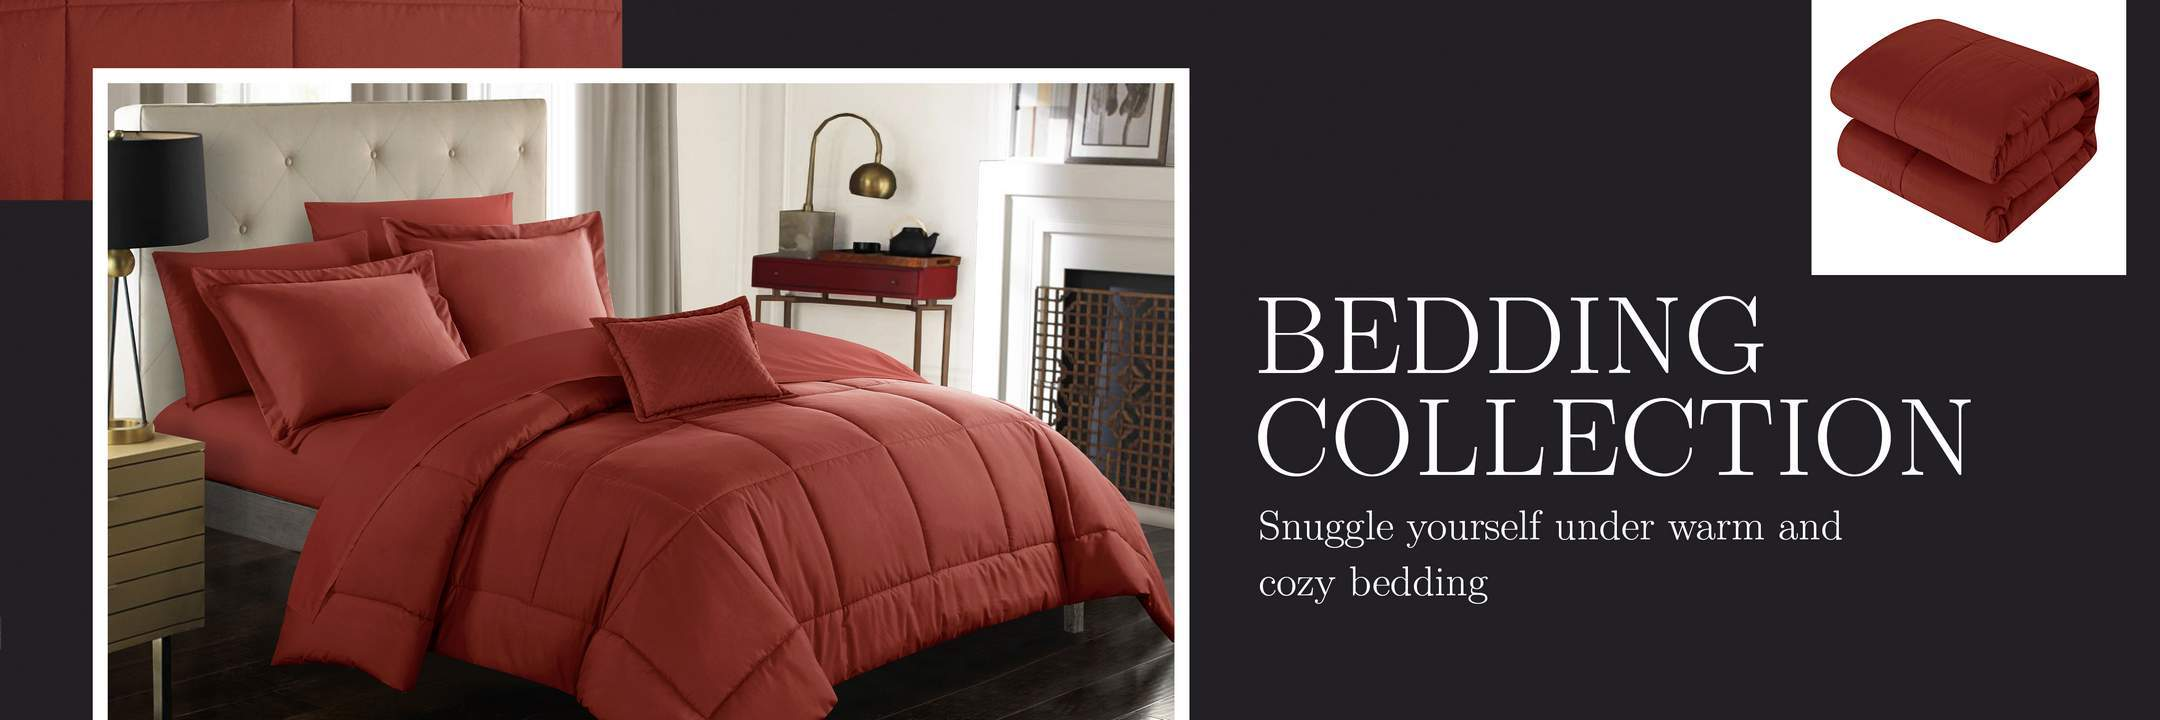 Banne featuring bedding items